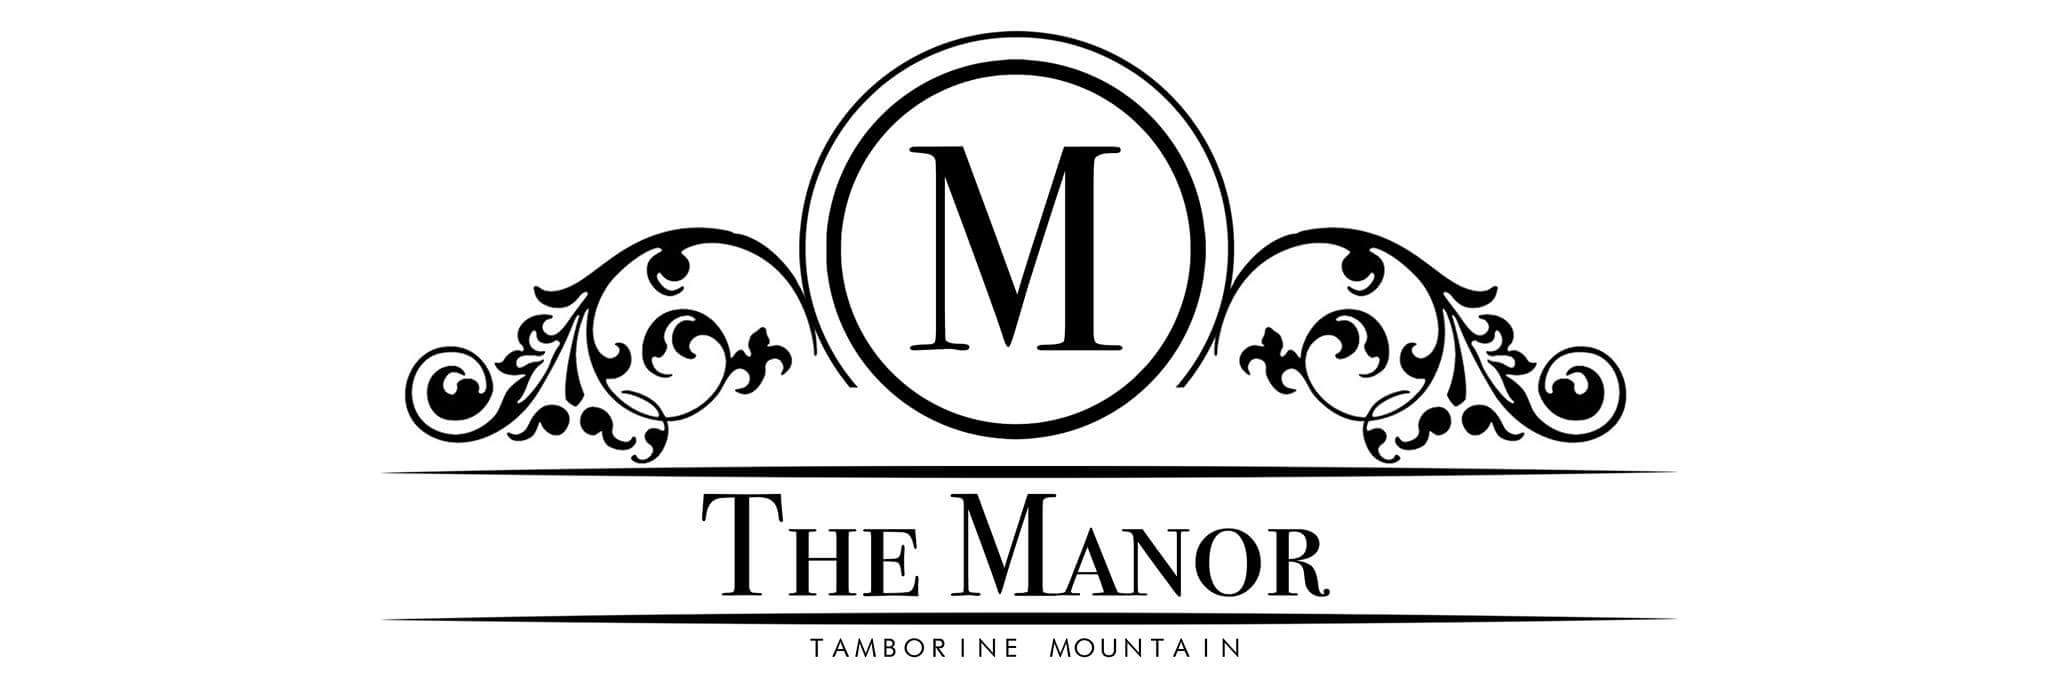 The Mountain Manor